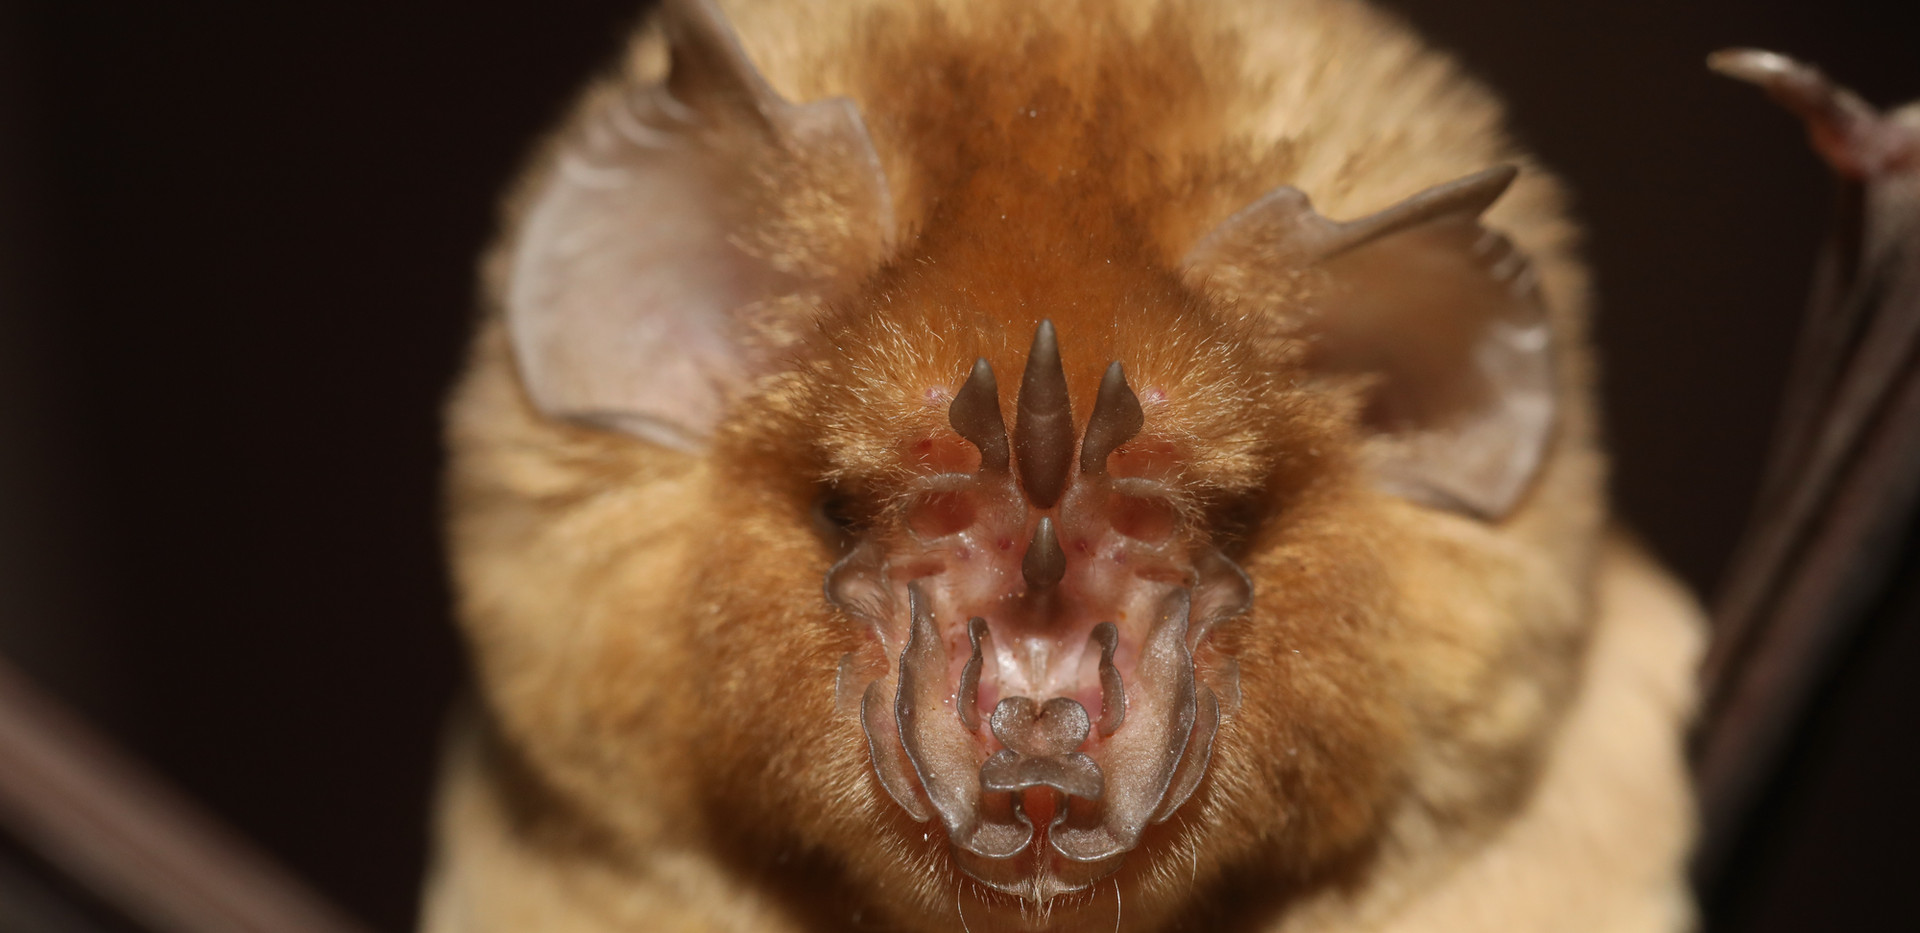 Persian Leaf-nosed bat